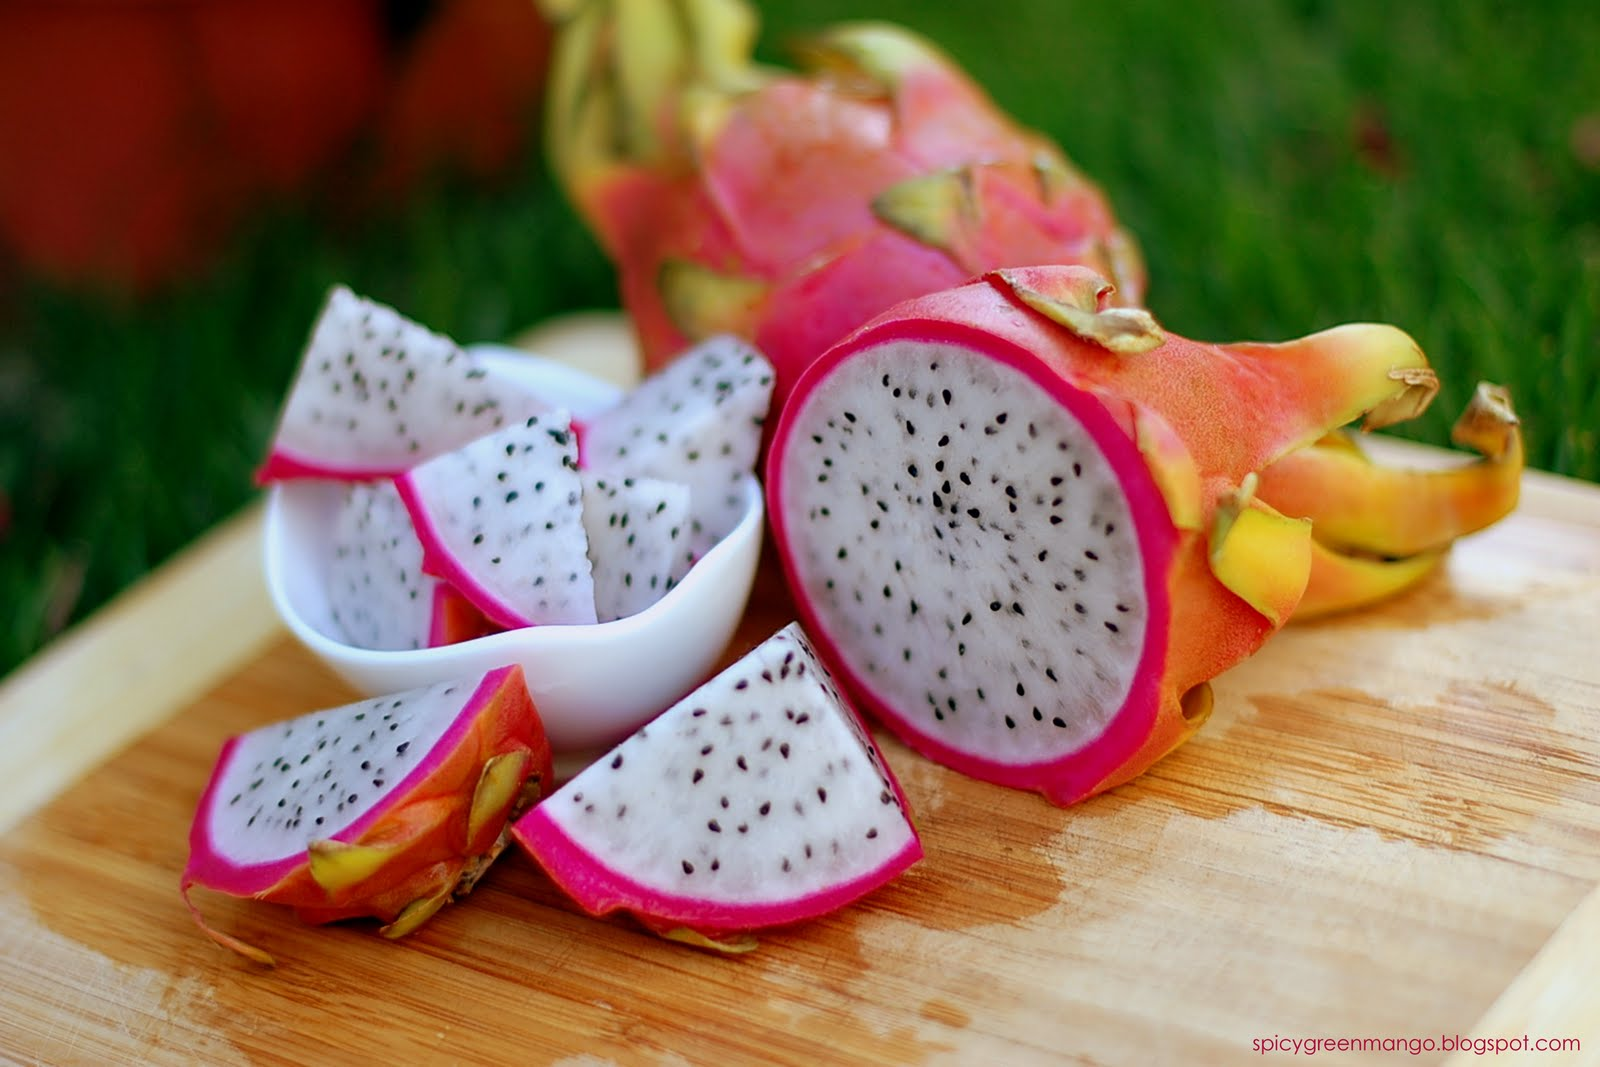 dragon fruit fruits with fiber